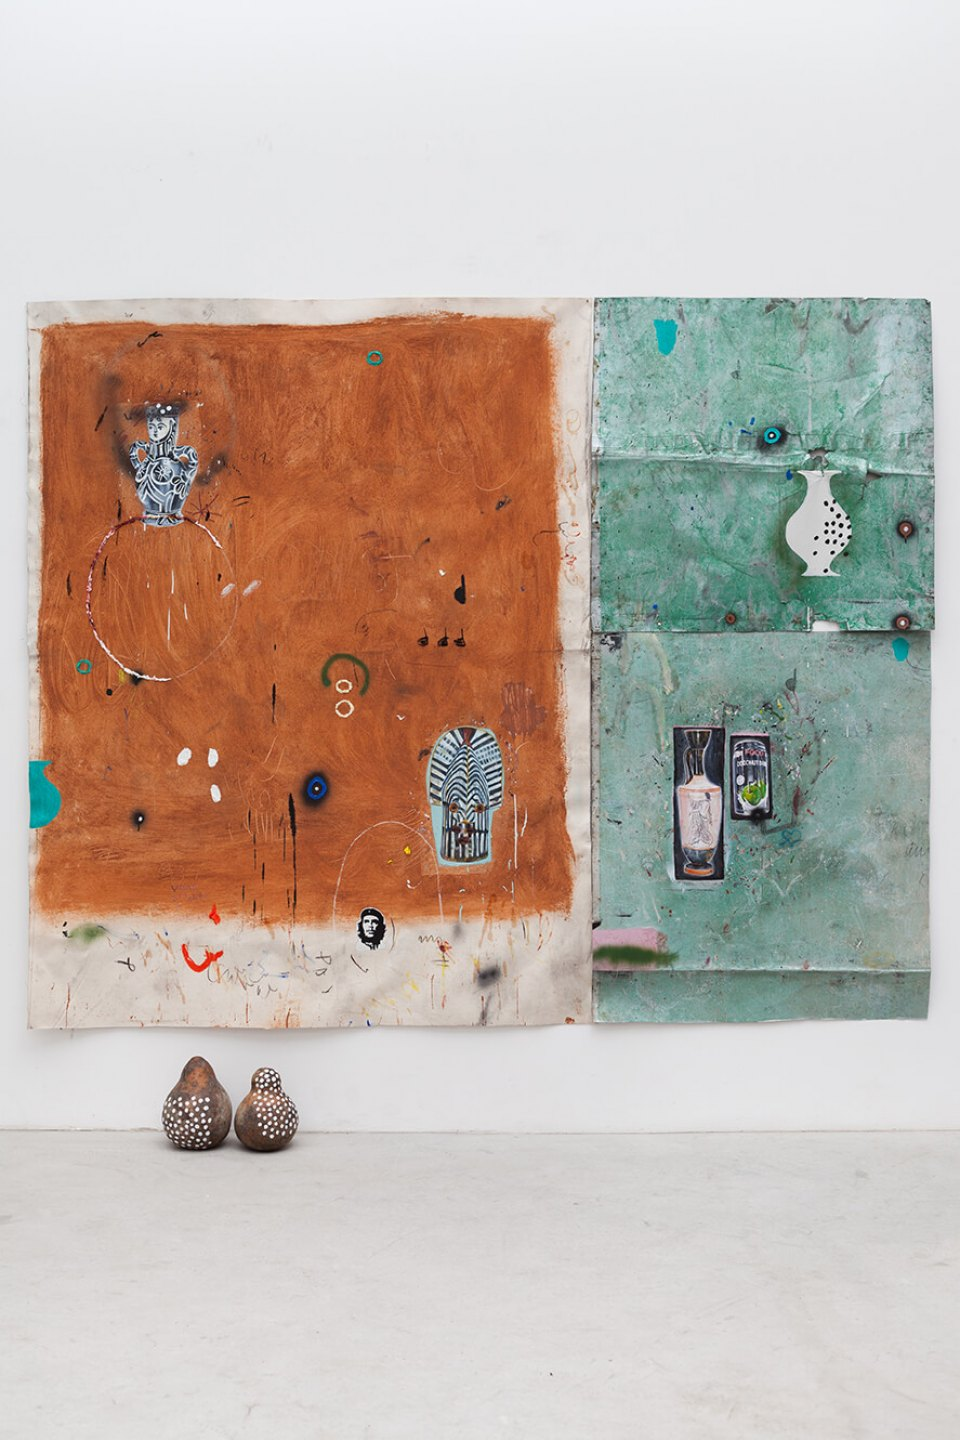 Paulo Nimer Pjota, <em>rammed earth facade part. II, lot of things,</em> 2015, acrylic, oil, pencil, pen, charcoal, pastel and pigment on canvas, aluminum plate and gourd, 252 × 262,5 × 26 cm - Mendes Wood DM